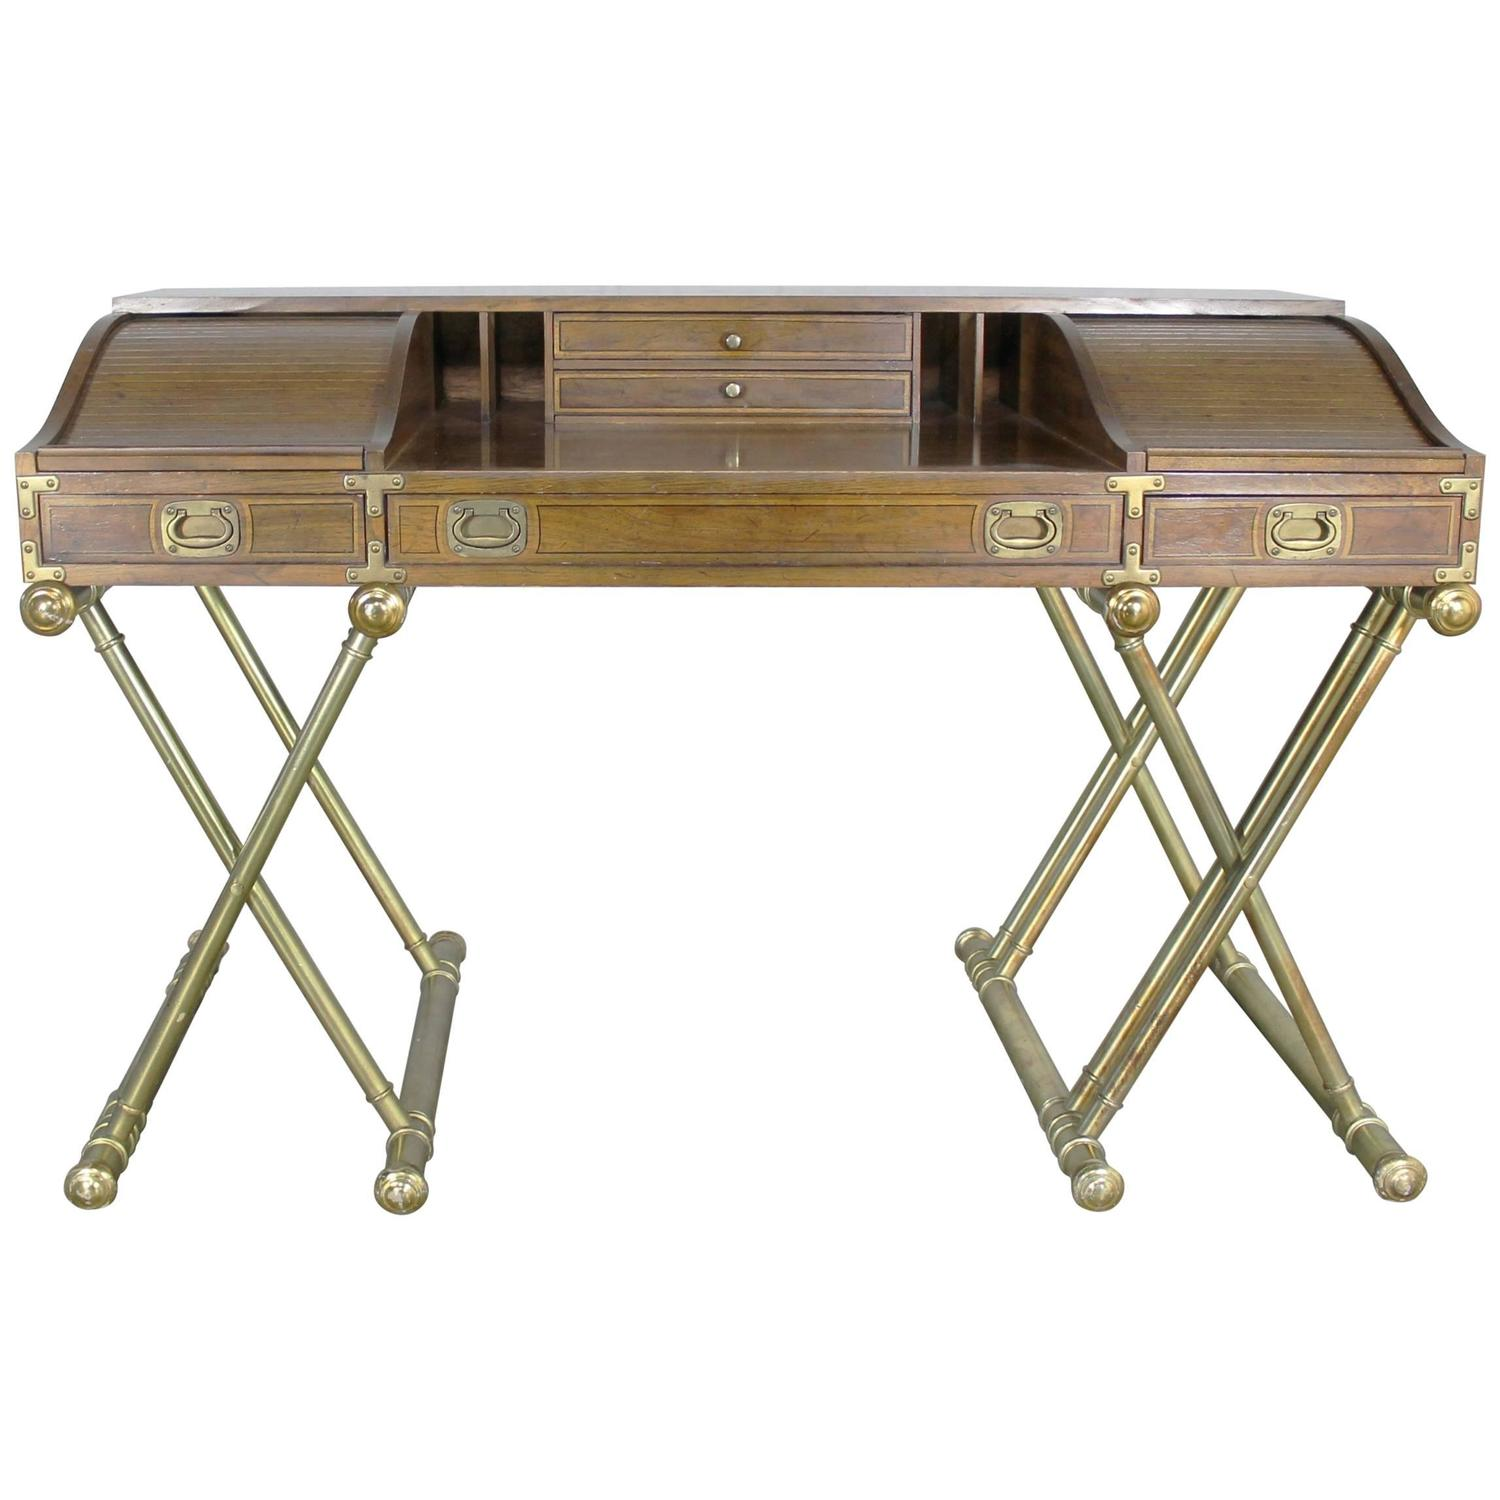 Vintage Drexel Campaign Desk With Gilt X Base Legs And Low Roll Top For At 1stdibs